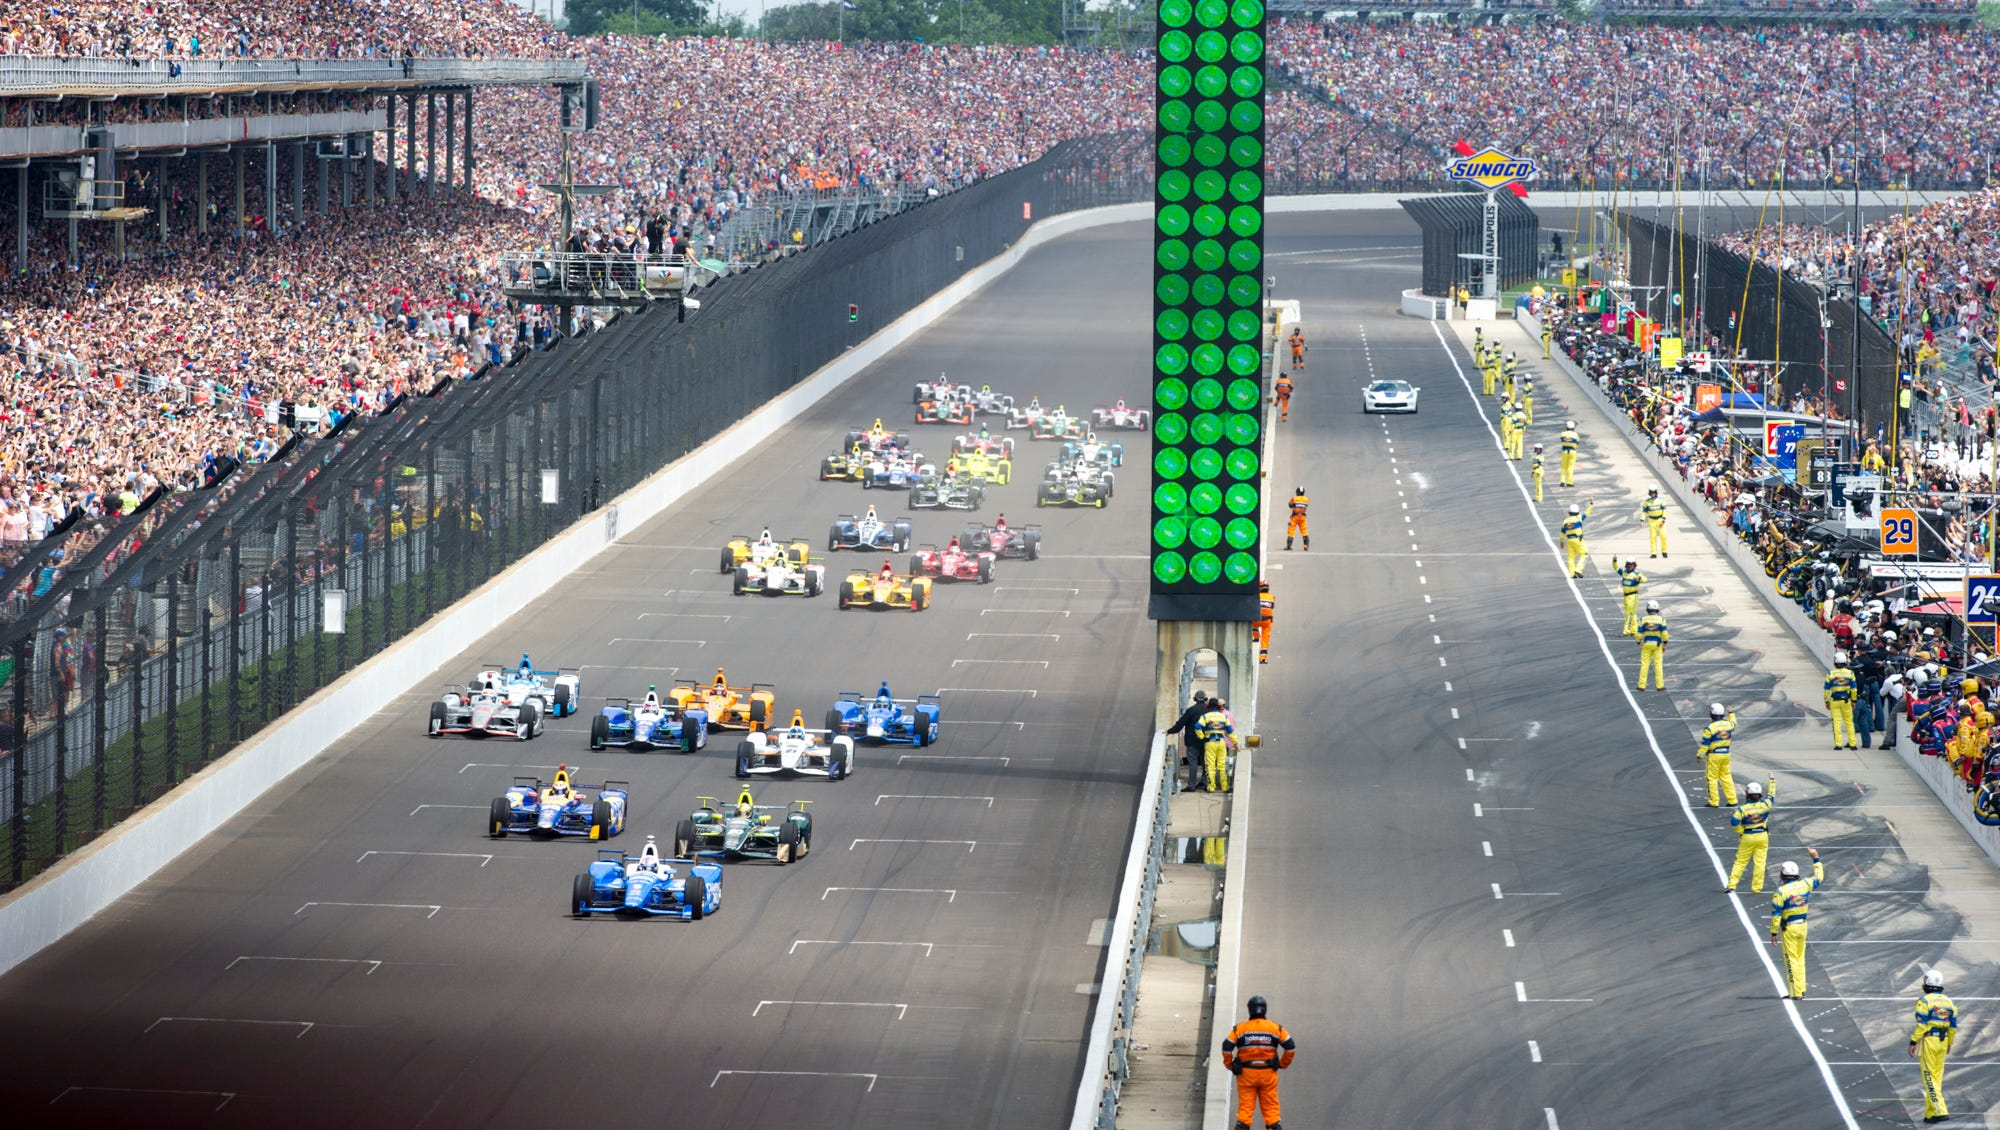 Indy 500 TV blackout: What you need to know